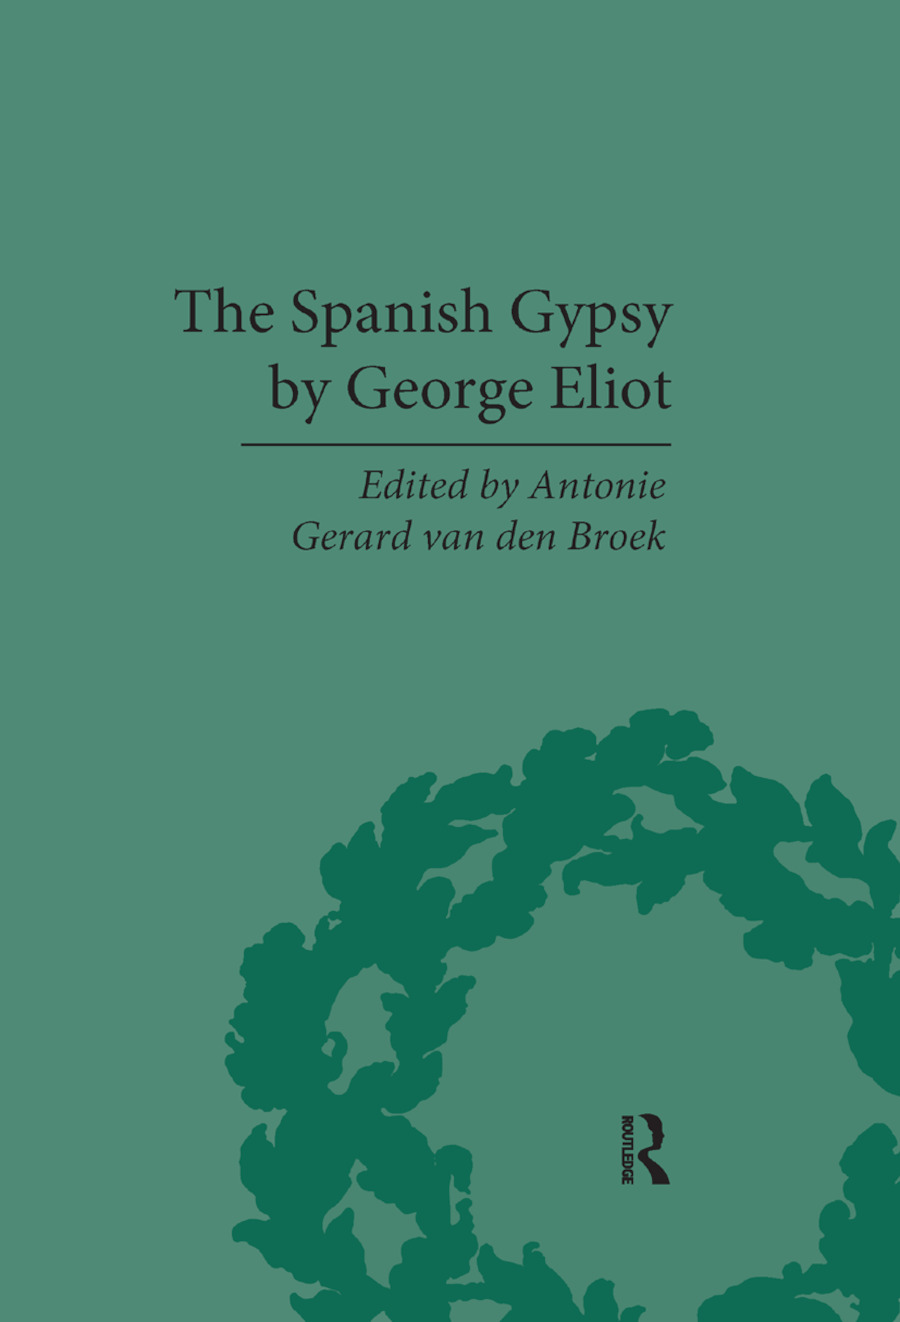 The Spanish Gypsy by George Eliot book cover